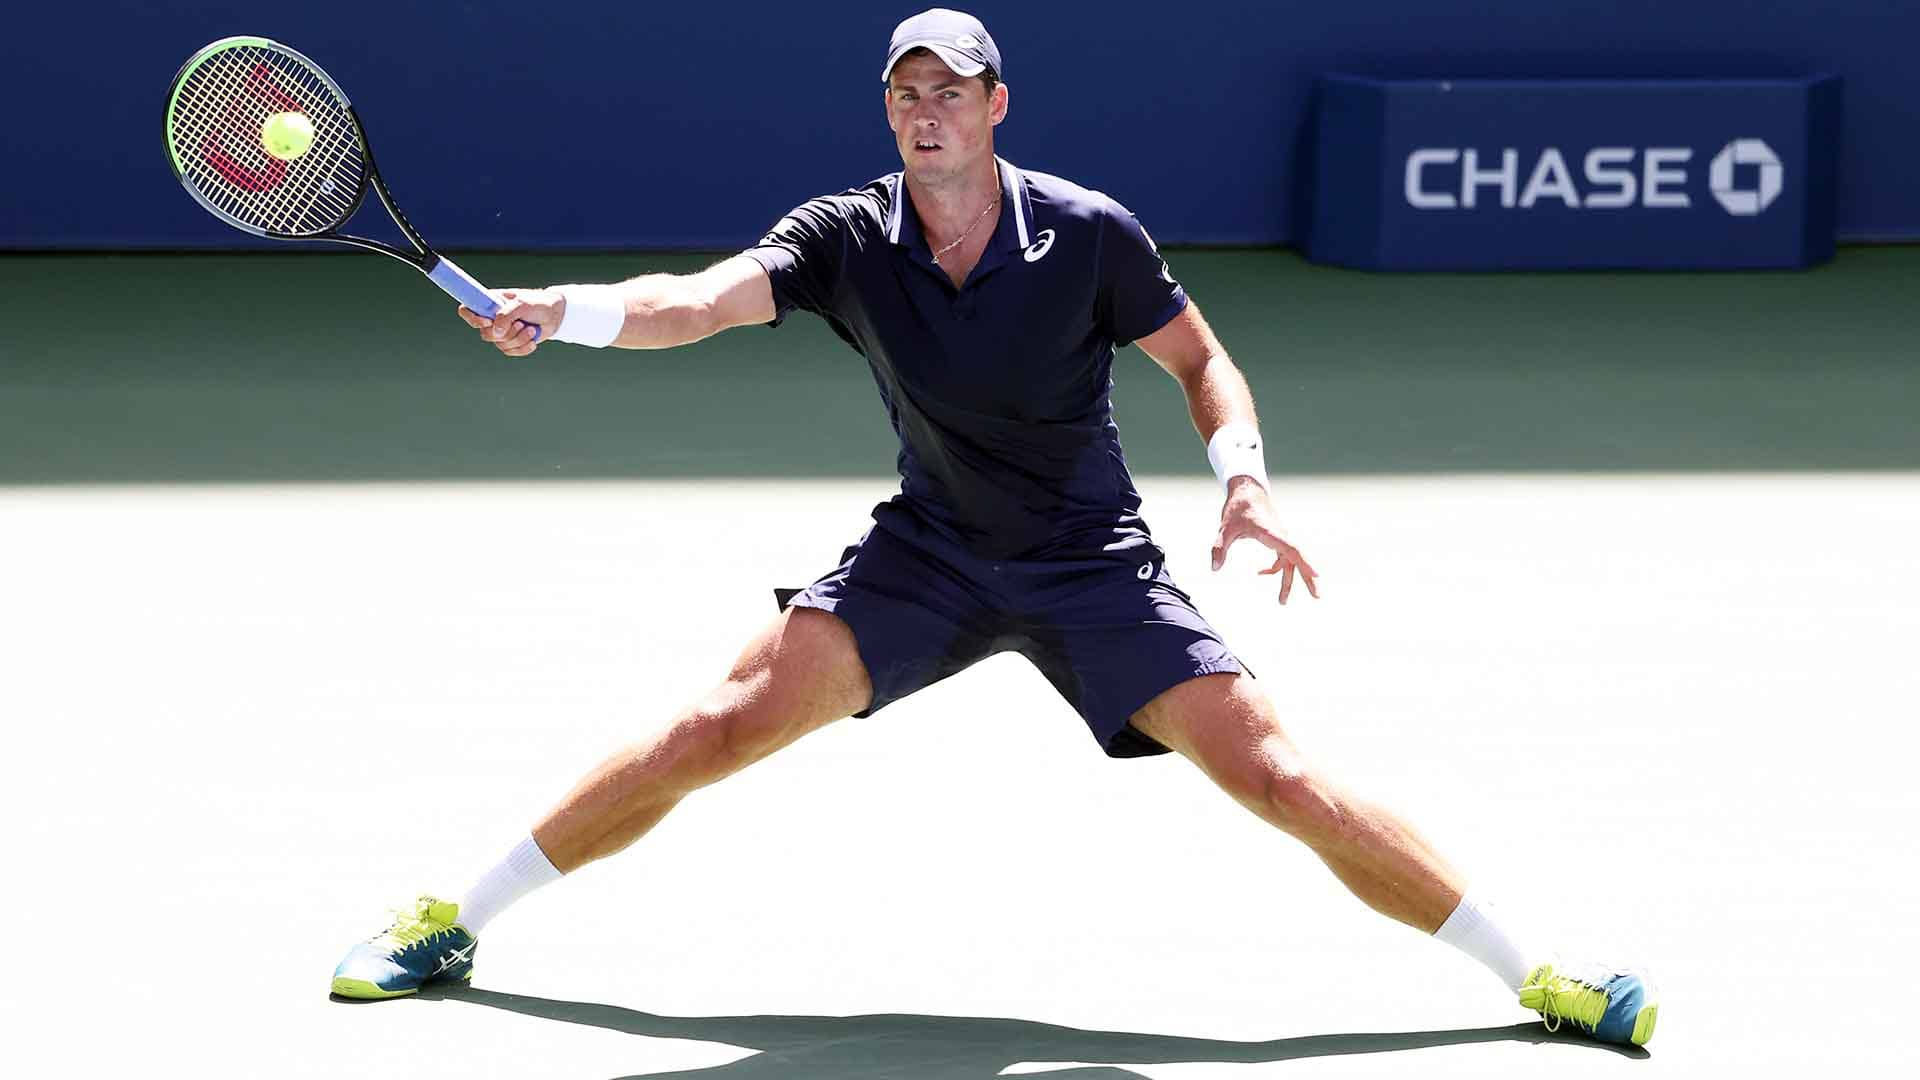 <a href='https://www.atptour.com/en/players/vasek-pospisil/pd07/overview'>Vasek Pospisil</a> is through to the <a href='https://www.atptour.com/en/tournaments/us-open/560/overview'>US Open</a> fourth round for the first time.